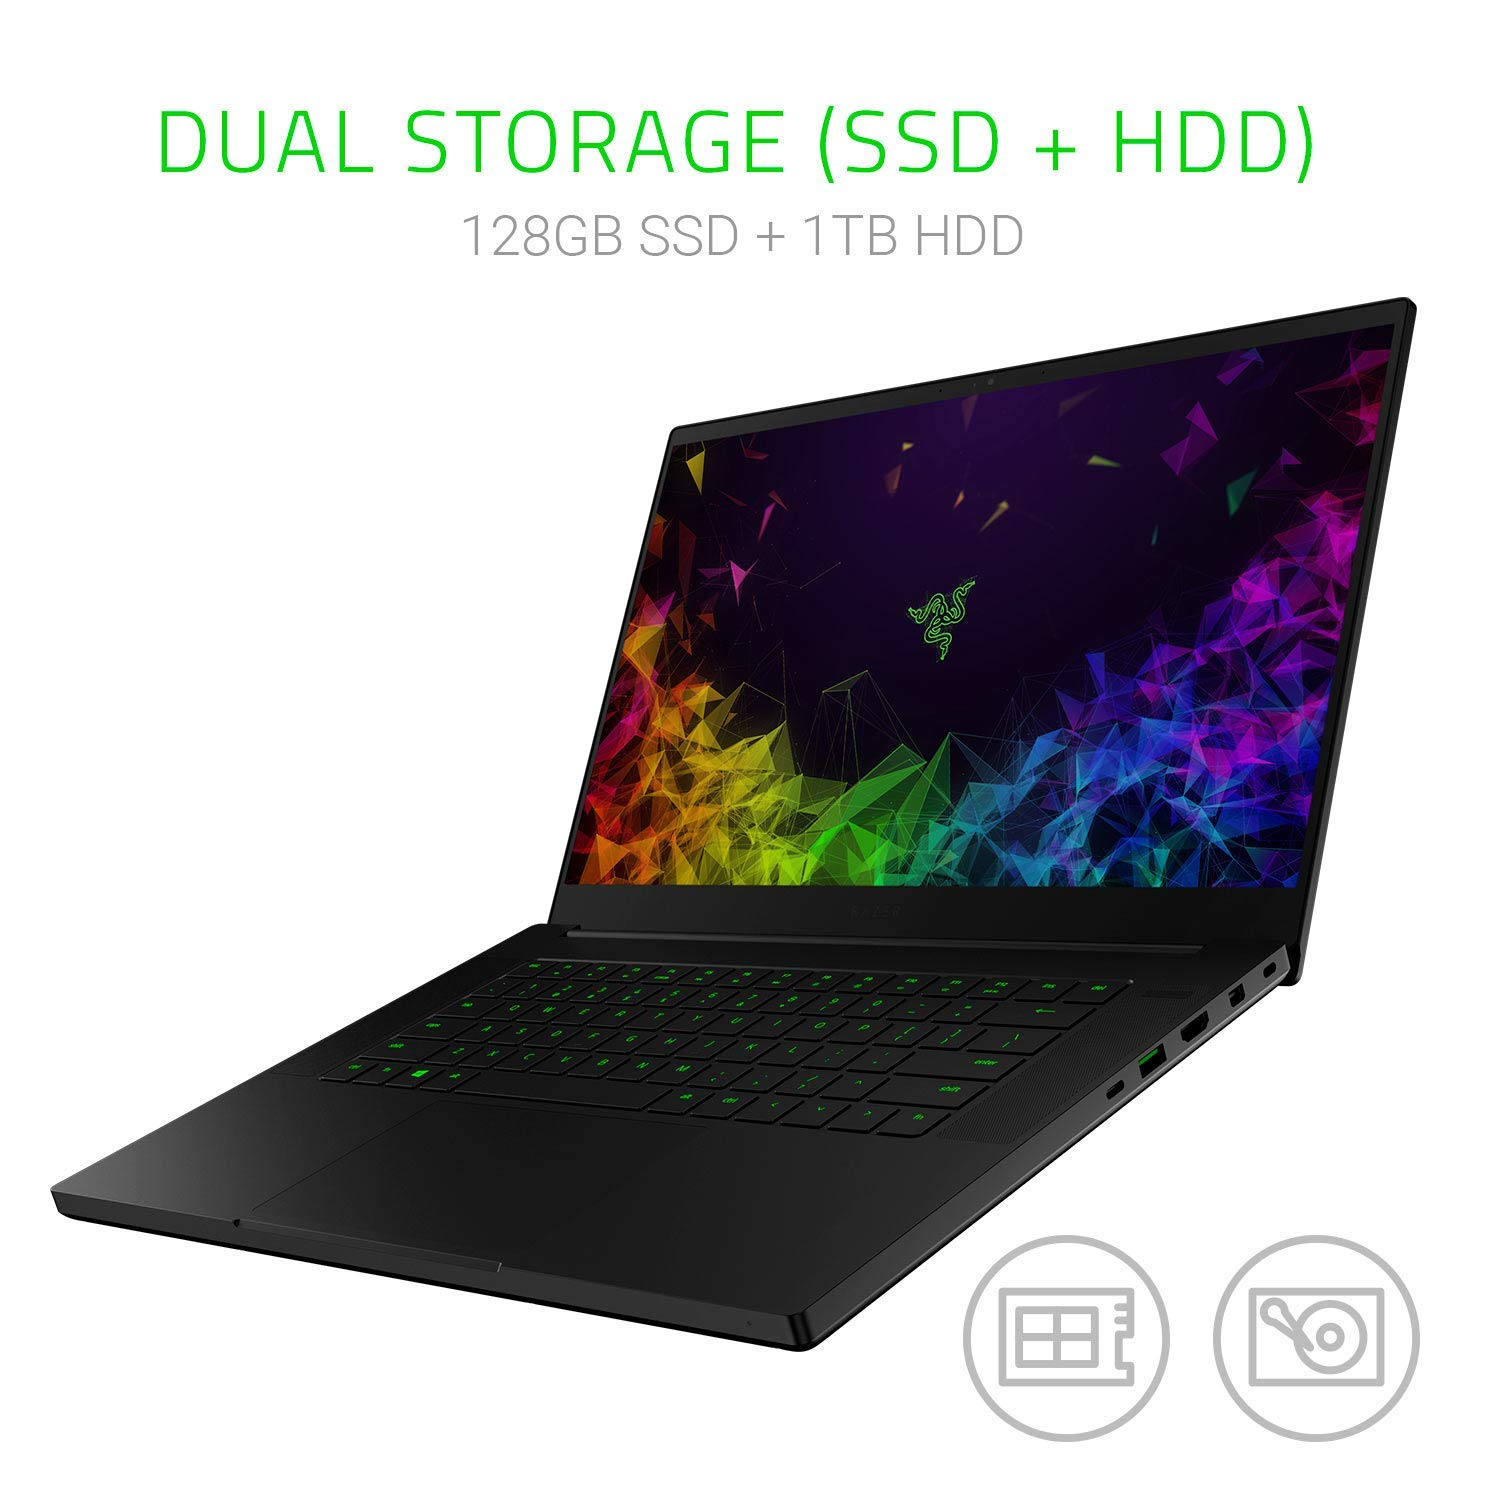 Razer Blade 15 - Best 2019 Architect Laptop